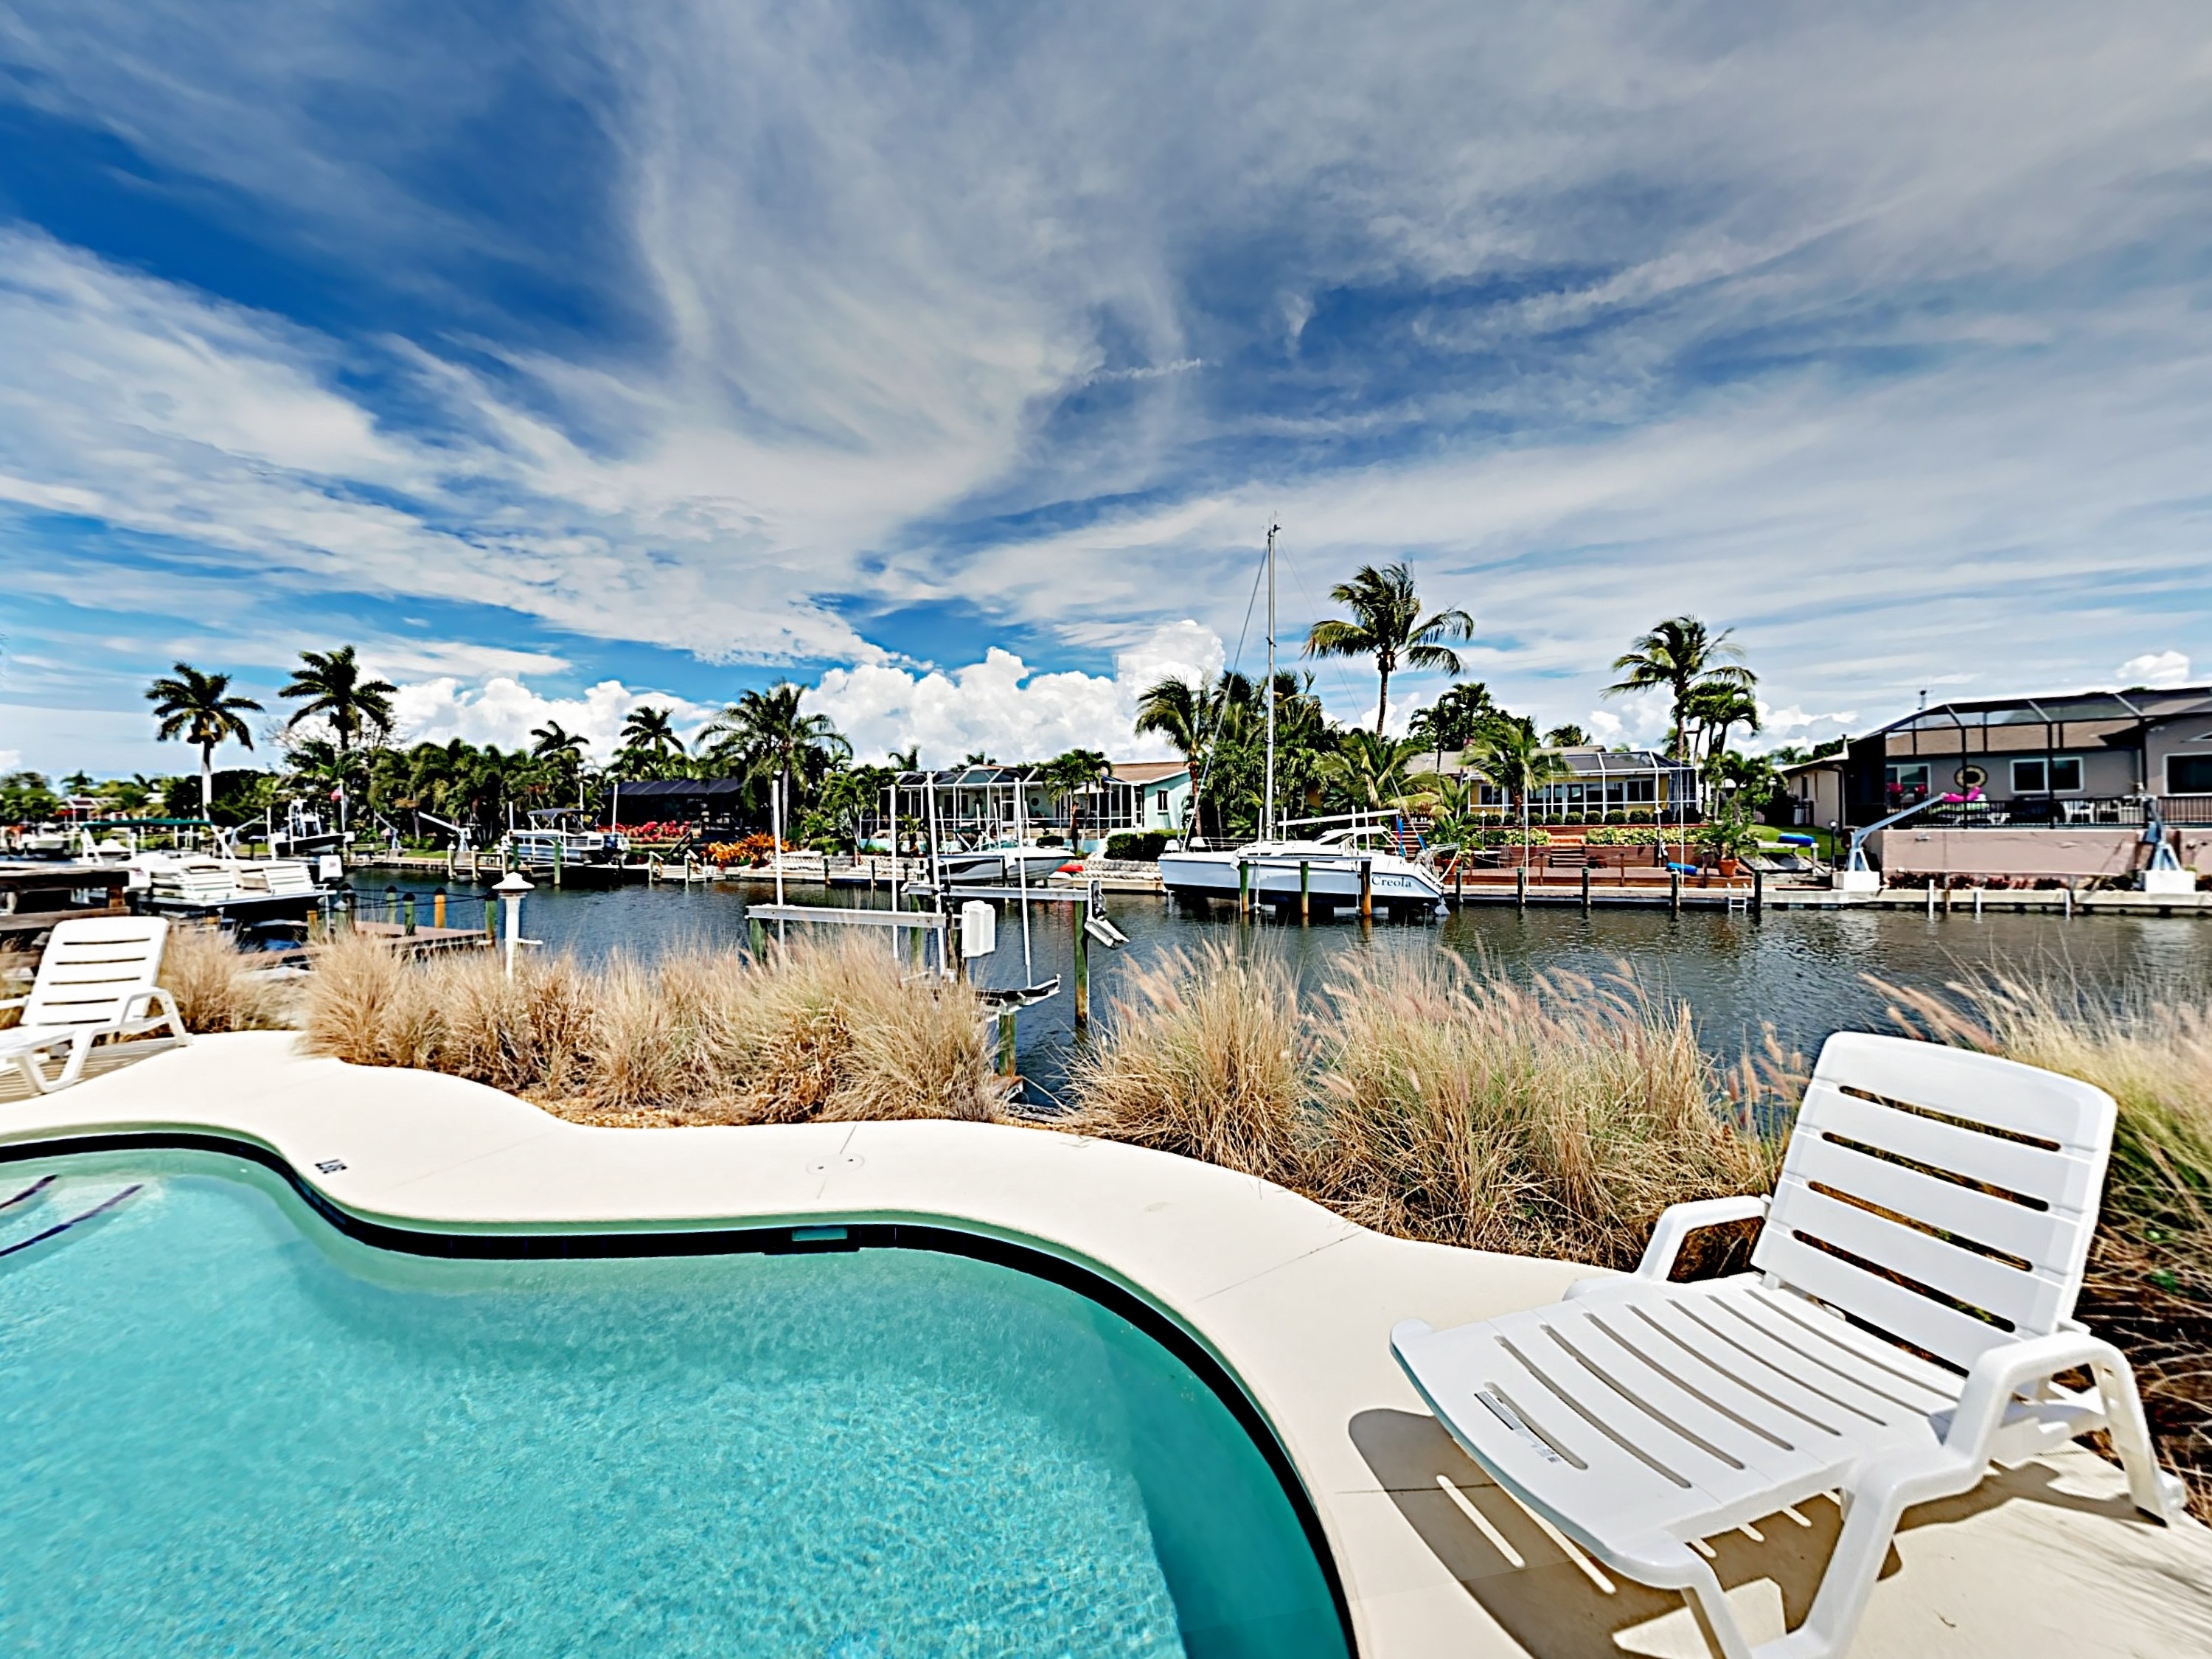 Bradenton FL Vacation Rental Welcome! This home